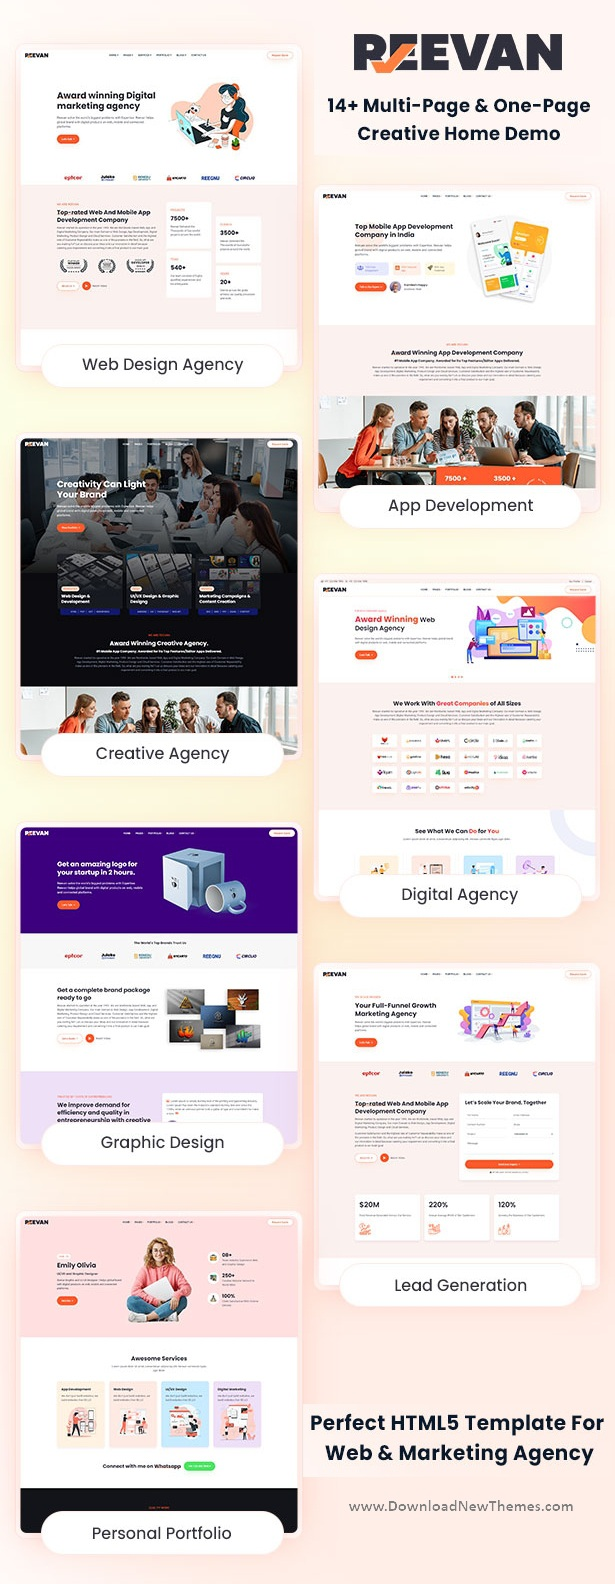 Web & Marketing Agency Bootstrap Template